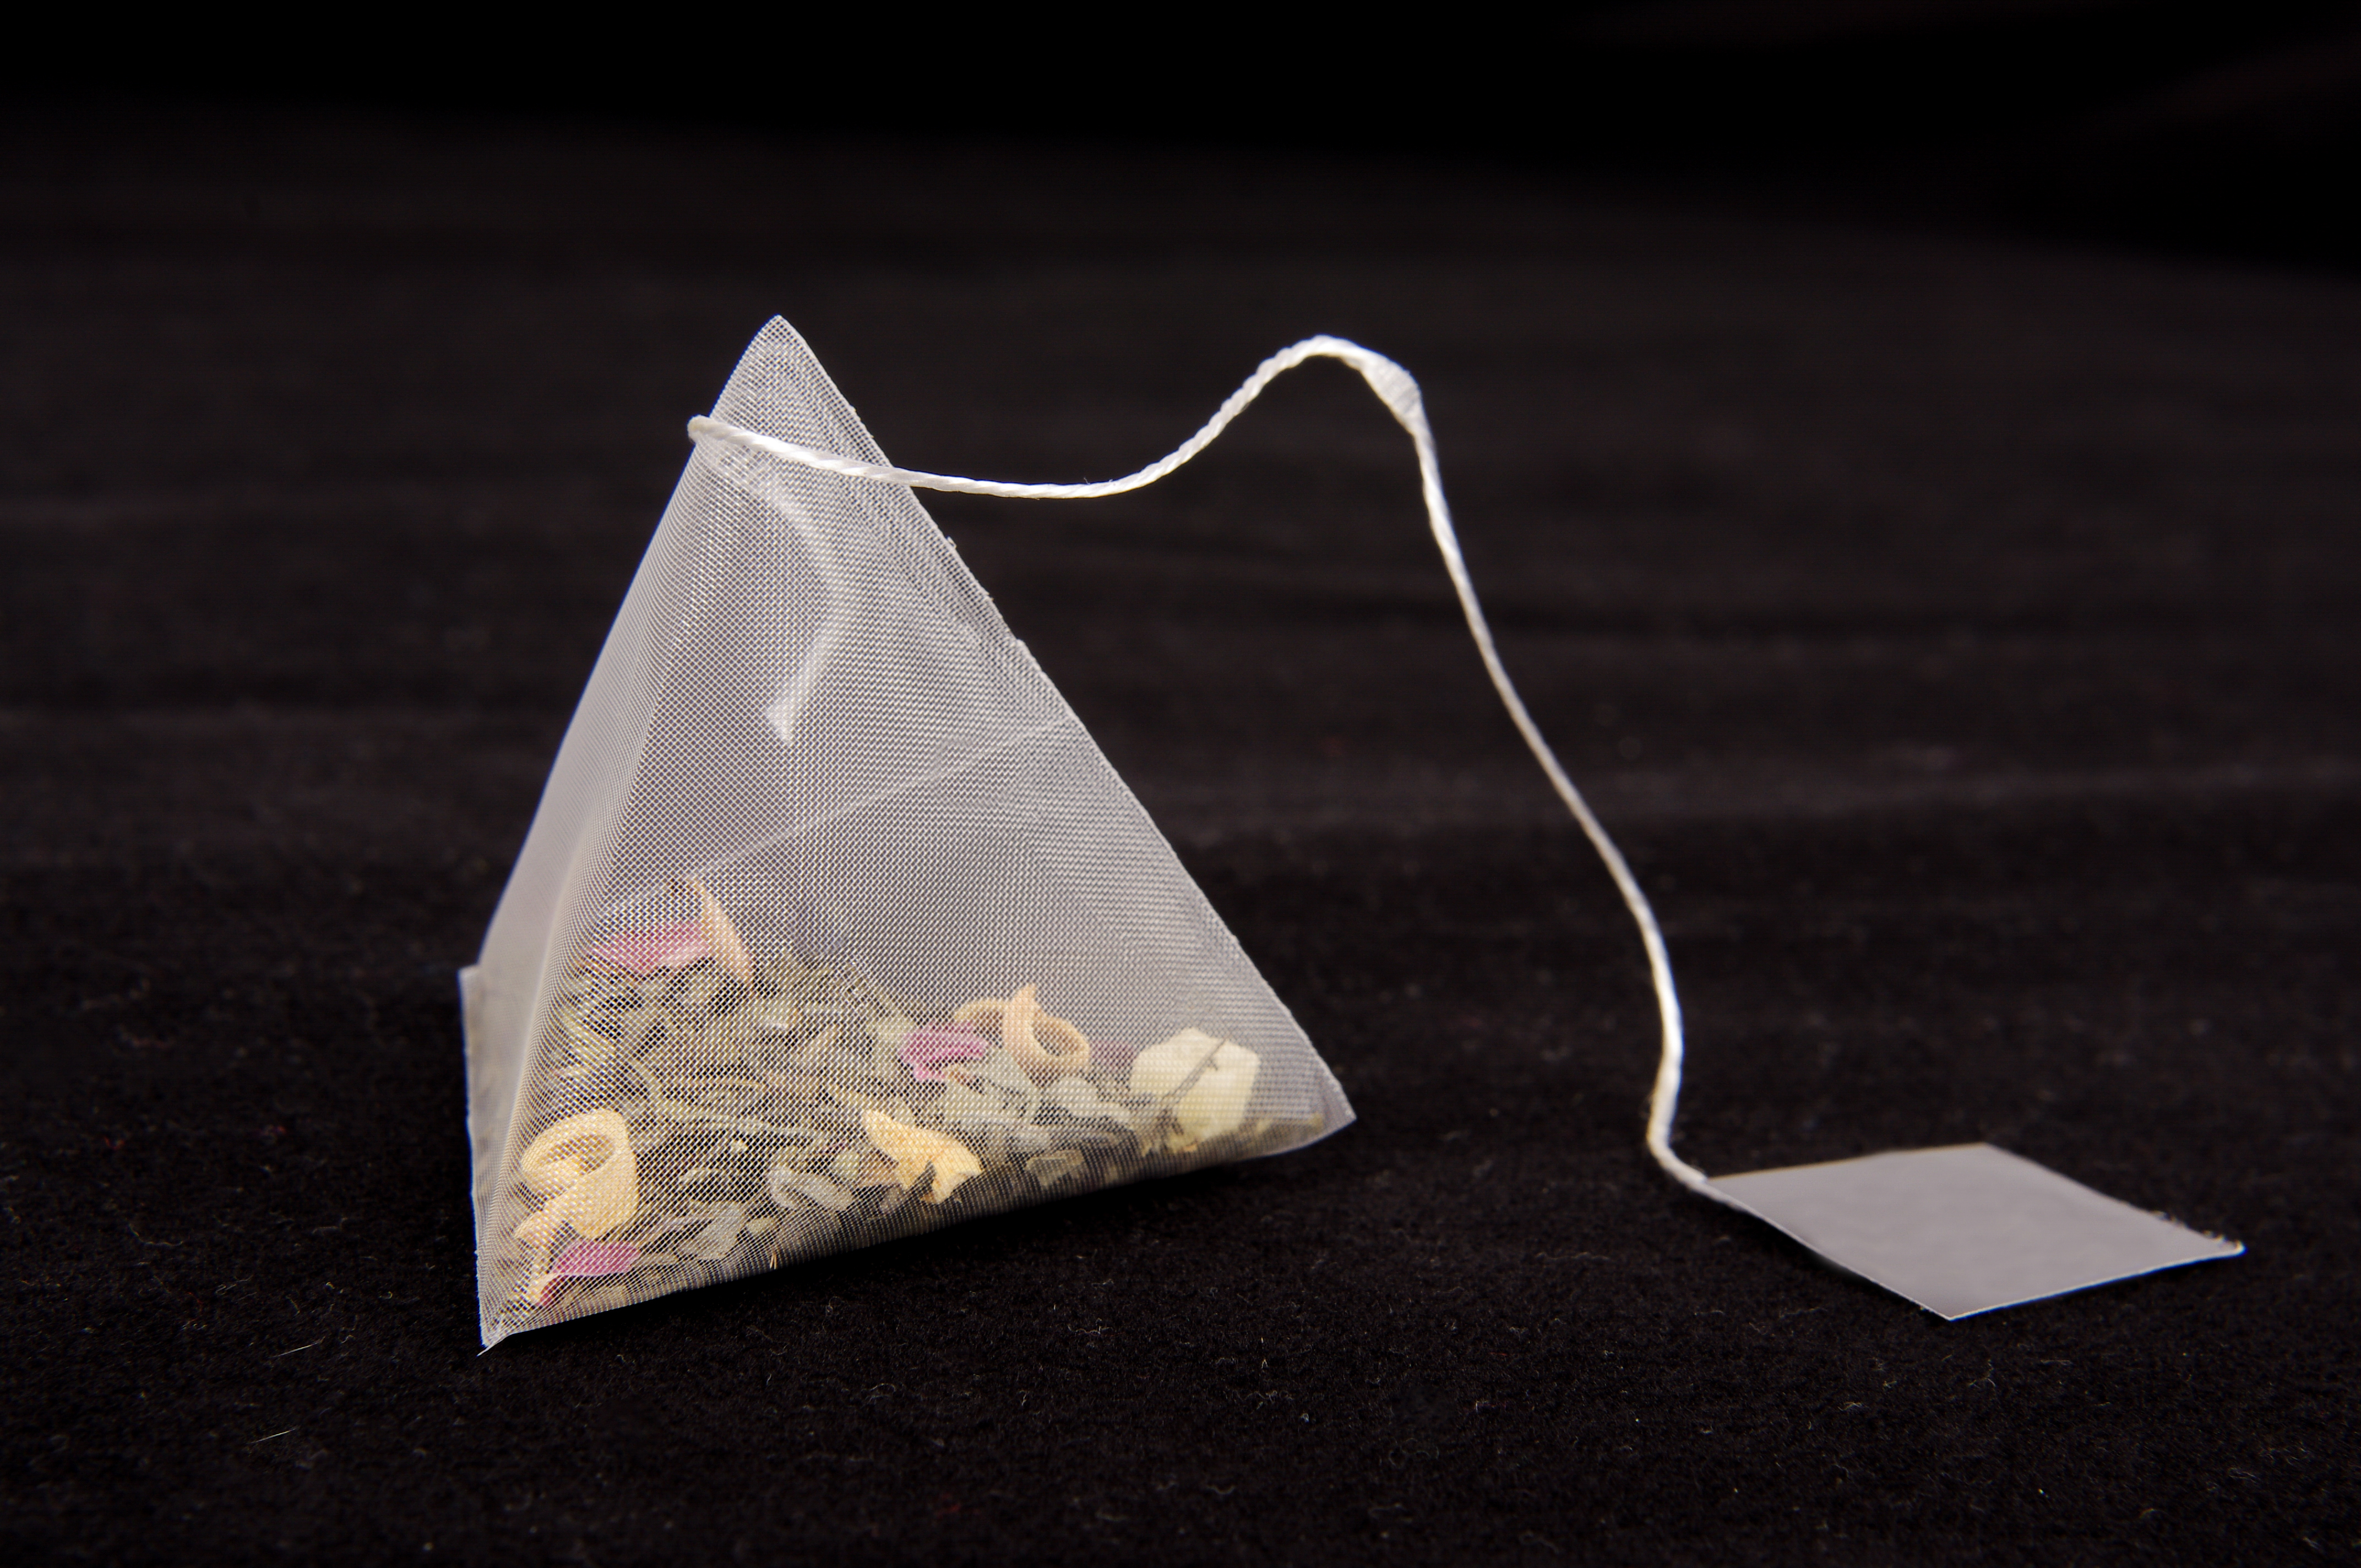 Teabag in the pyramid shape on the dark background